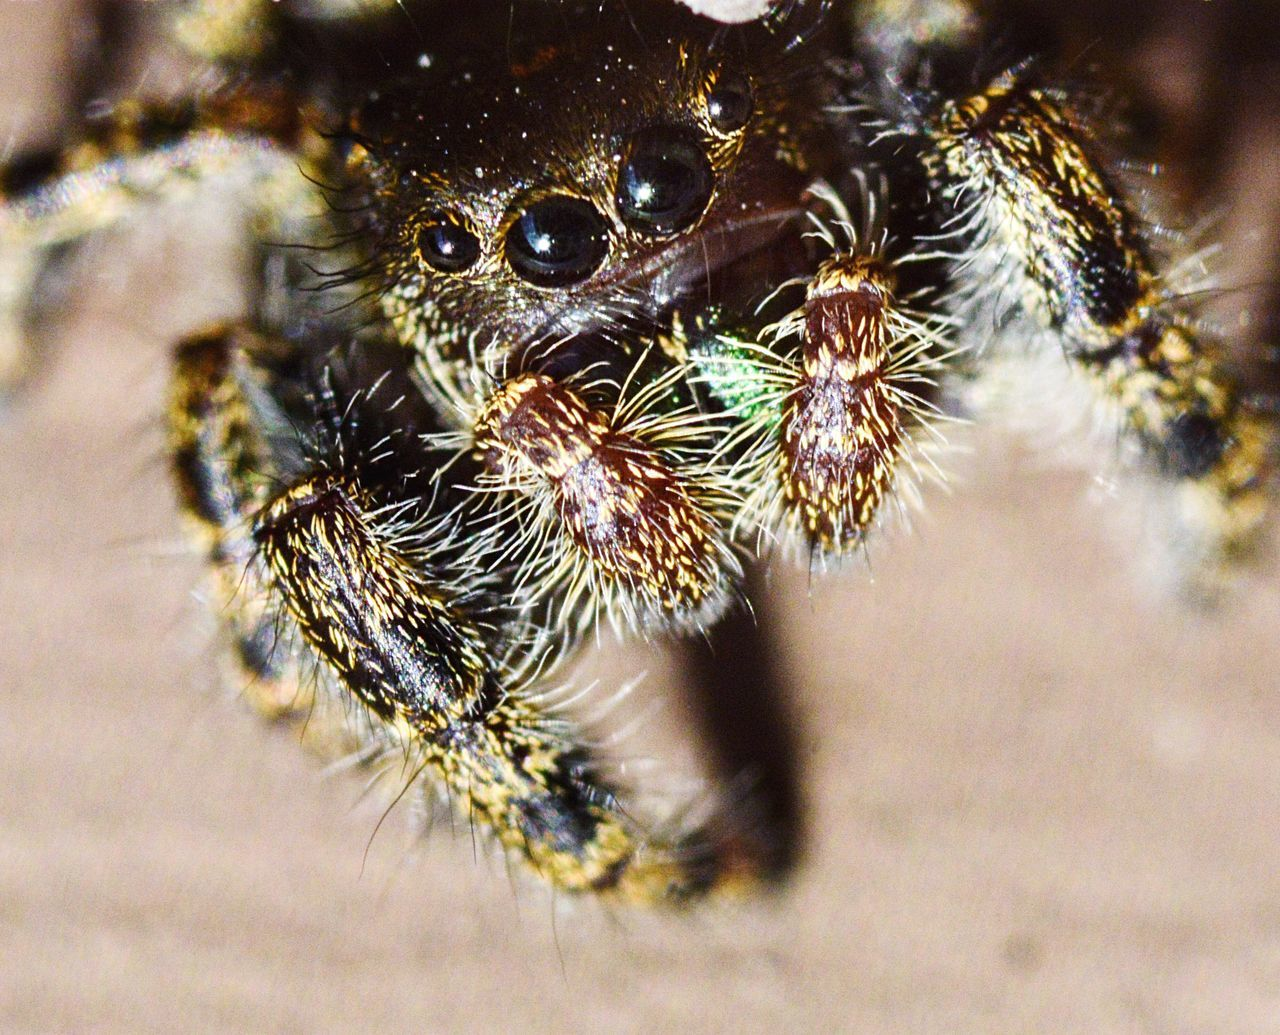 Cute macro jumping spider Spider One Animal Jumping Spider Animal Themes Animals In The Wild Close-up Arachnid Animal Wildlife No People Nature Day Outdoors Macro Spider Macro Nature Macro Photography Jumping Spider Macro_collection Macro Macro Beauty